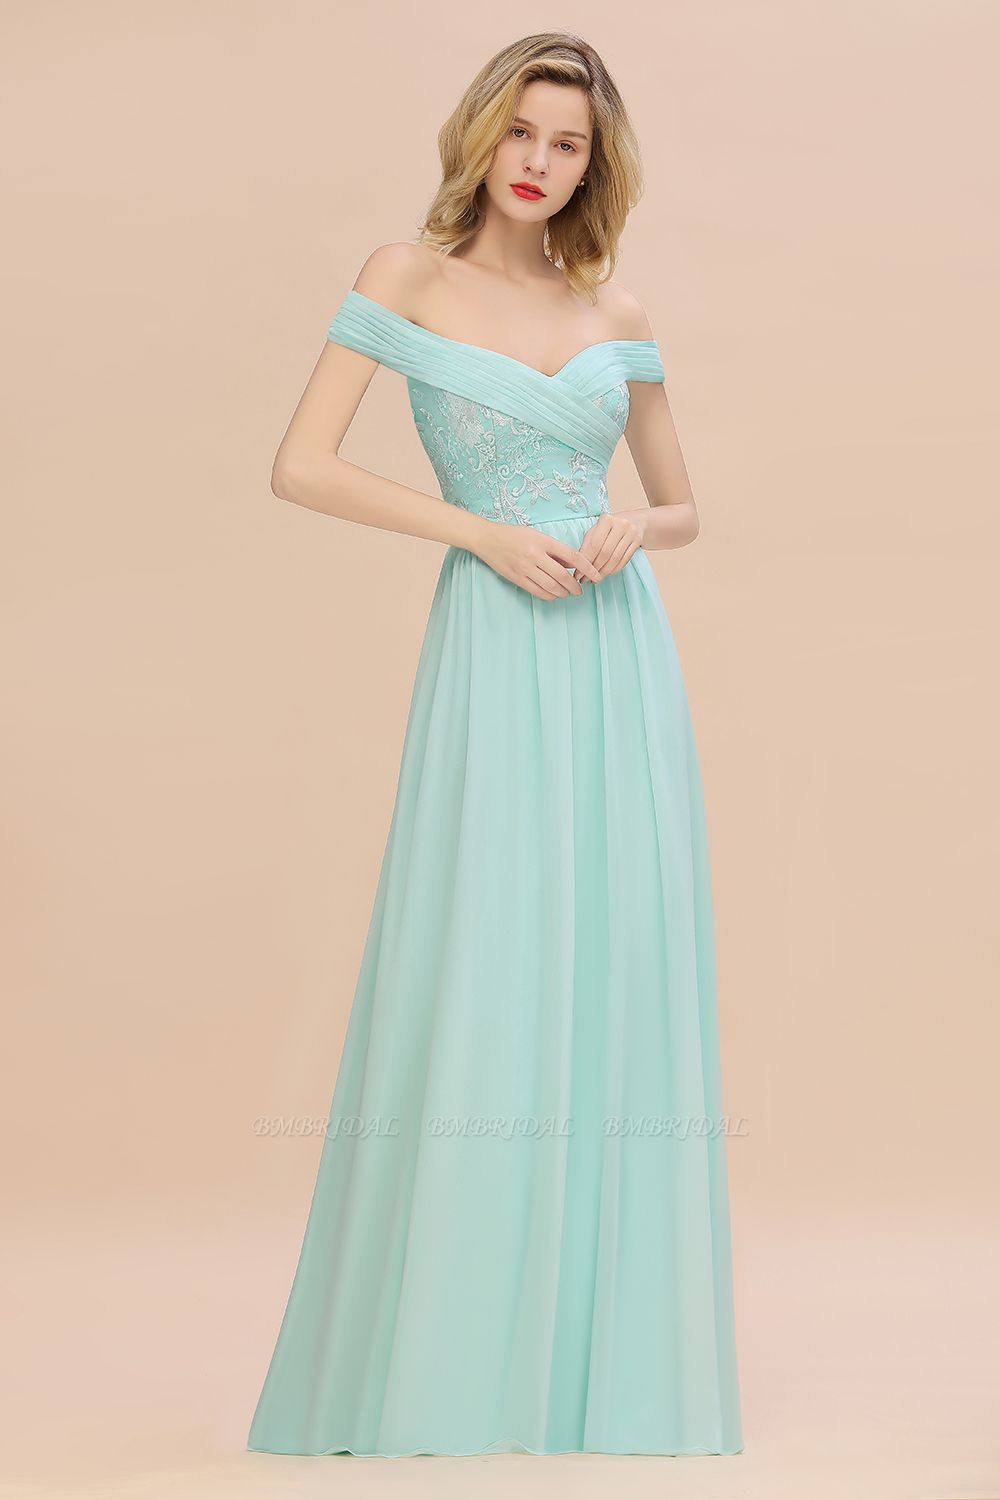 Simple Off-the-shoulder Long Affordable Bridesmaid Dress With Appliques